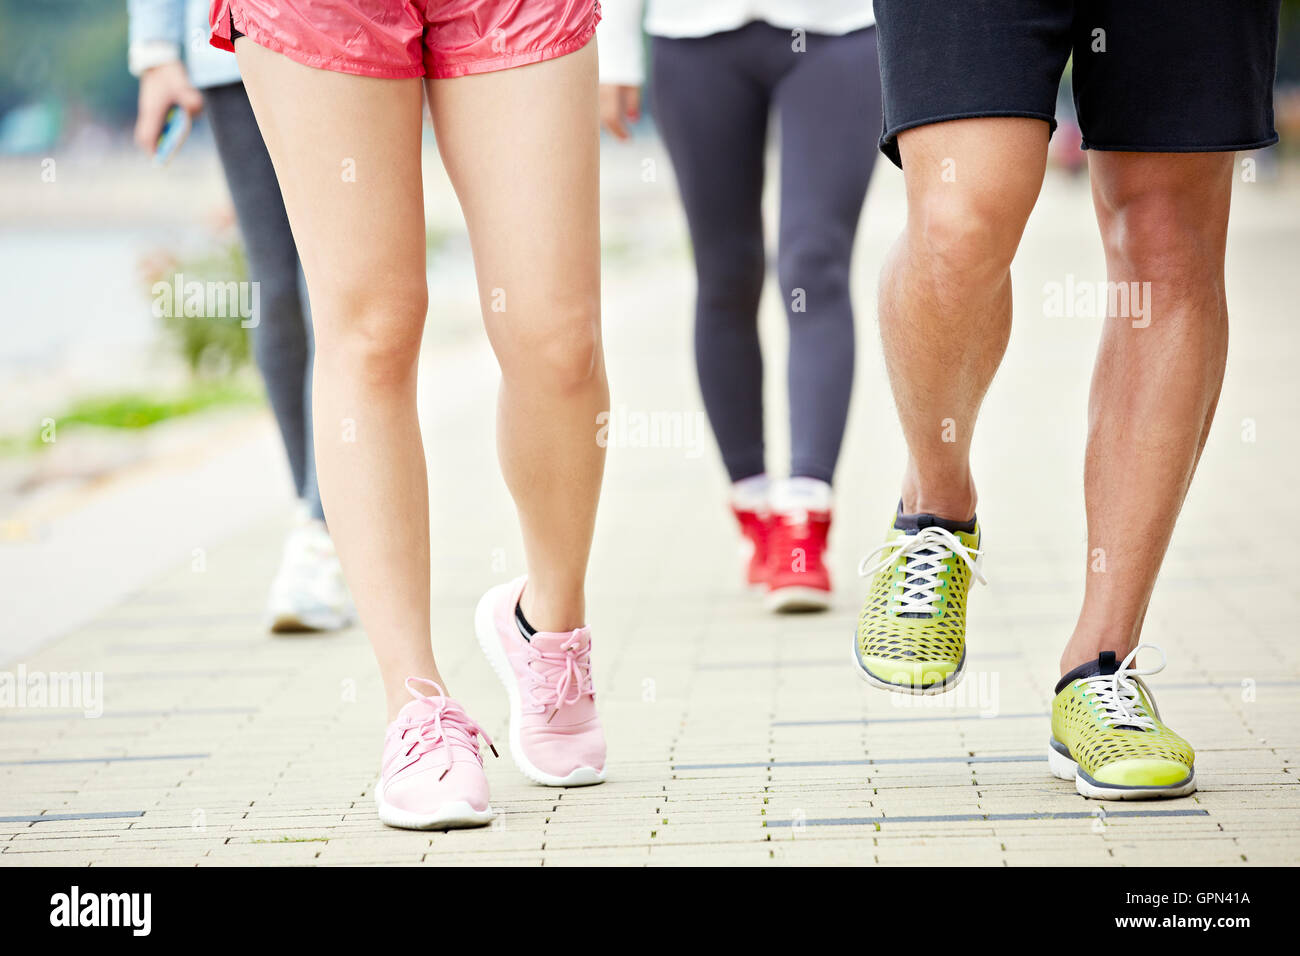 close-up of feet of runners and joggers on a park running trail - Stock Image